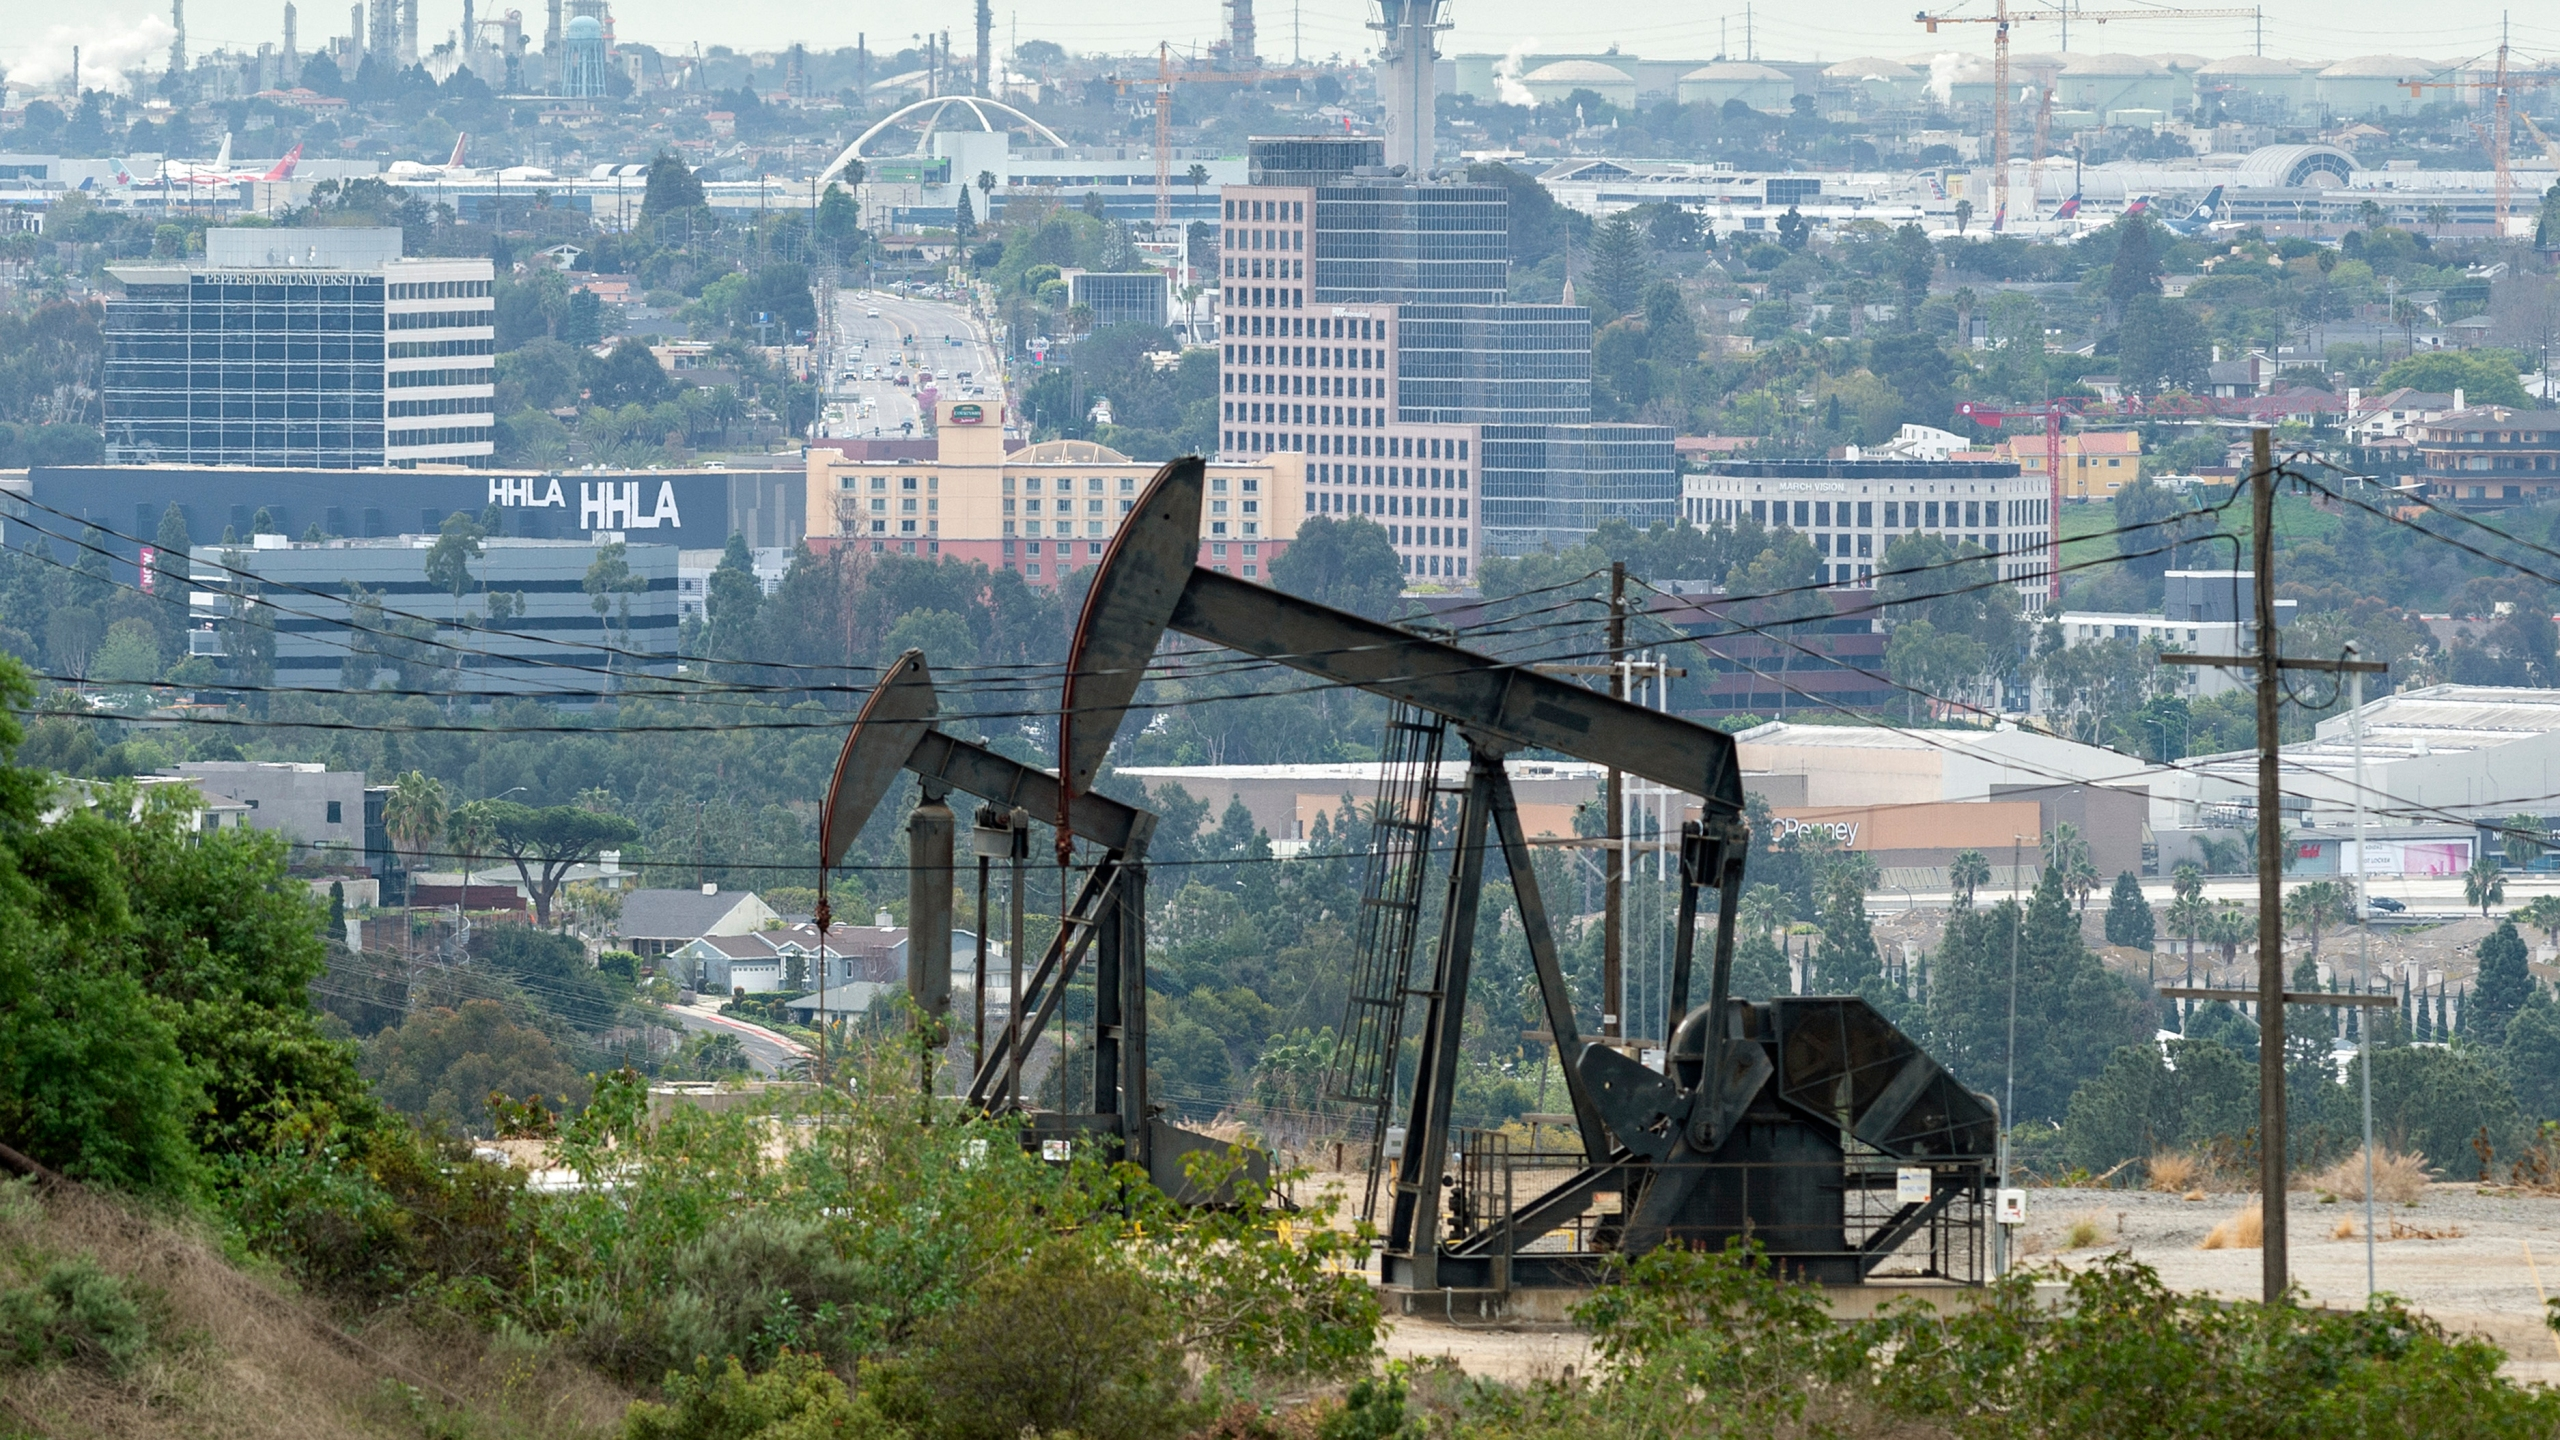 The Inglewood Oil Field on March 9, 2020 in Los Angeles. (Lionel Hahn/Abaca/Sipa USA via AP Images/CNN)